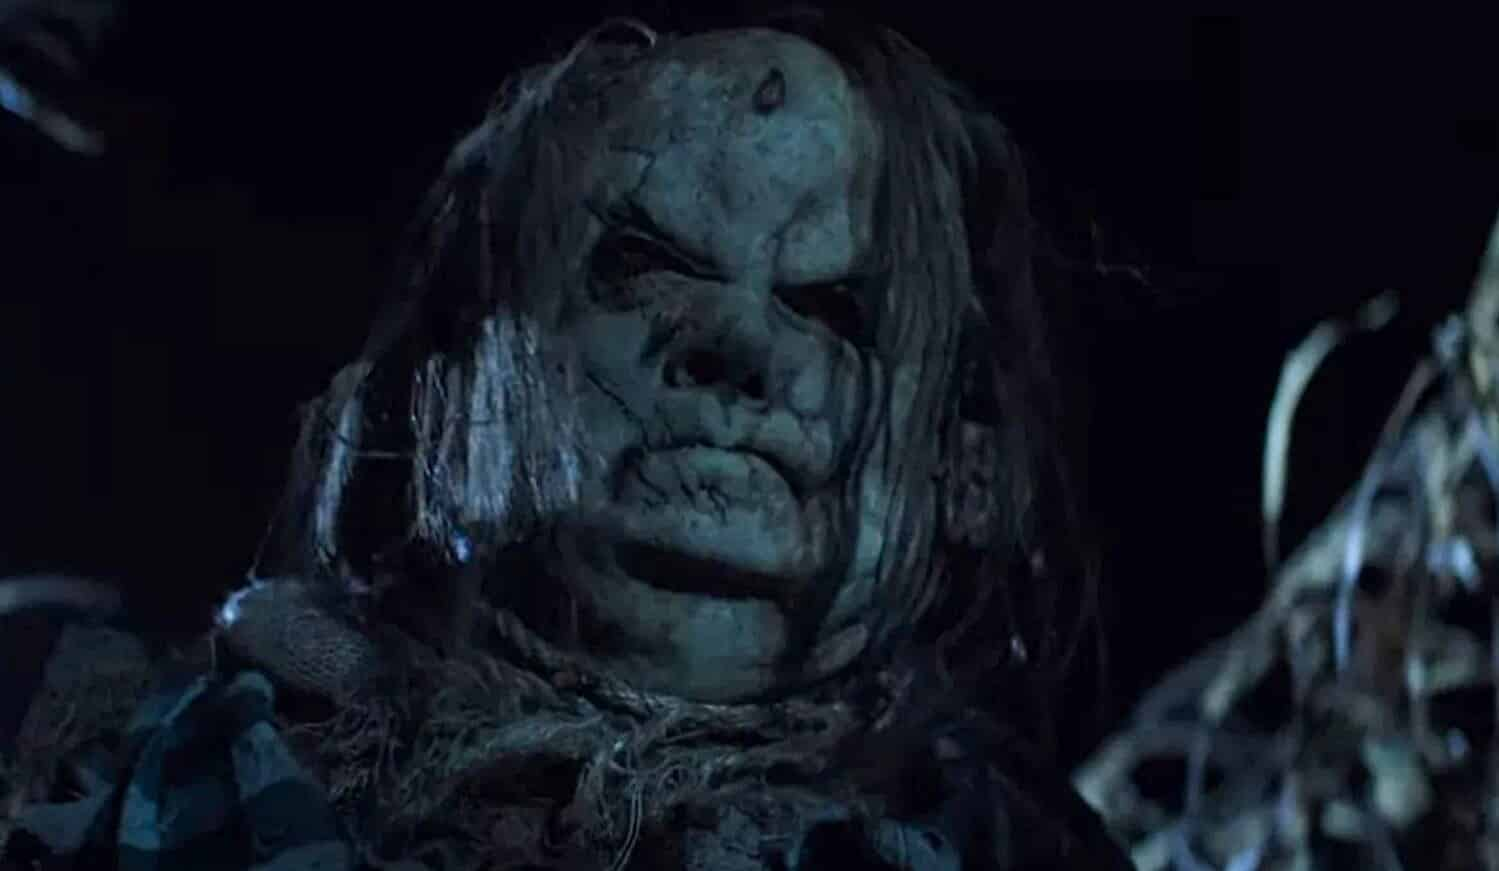 Scary Stories To Tell In The Dark' First Trailer Is Here - And It's